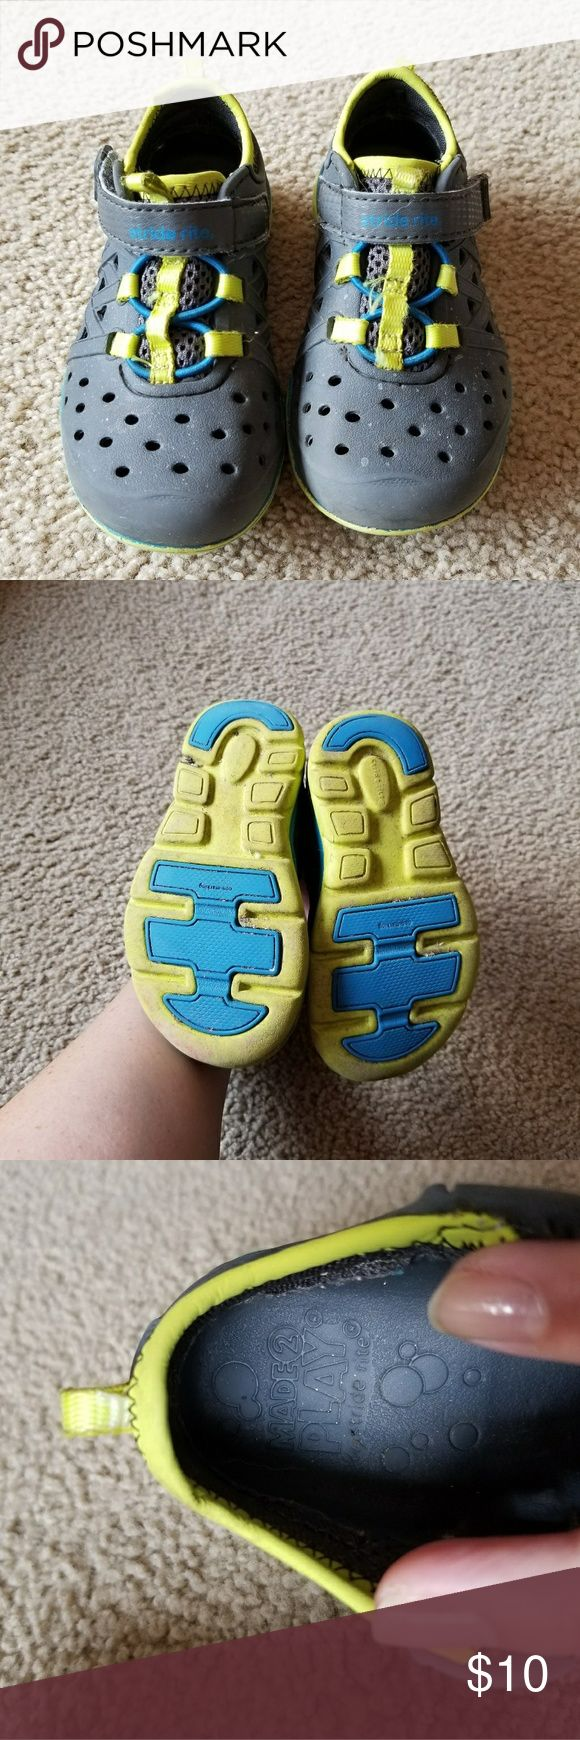 Stride Rite made2play phibian shoes Stride Rite made2play phibian shoes. Grey and yellow. Used but good condition. The size tag is worn, but I am 98% sure these are a toddler 7. Stride Rite Shoes